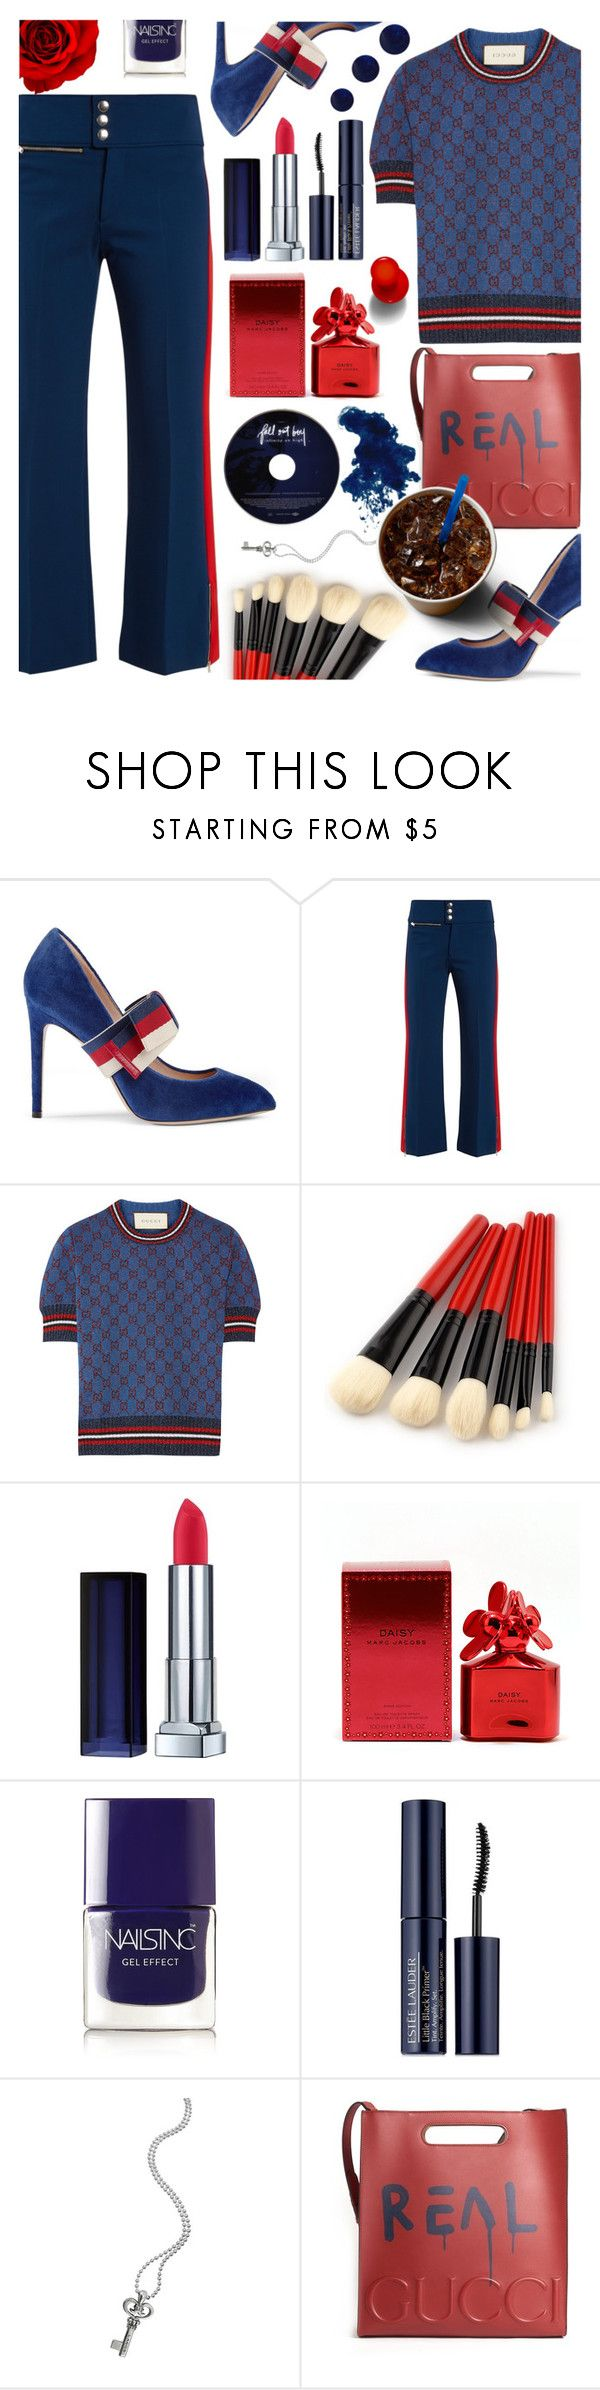 """""""Gucci"""" by tinkabella222 ❤ liked on Polyvore featuring Gucci, Marc Jacobs, Nails Inc., Estée Lauder, Lagos, RGB, trousers, highheels, gucci and ShadesofBlue"""